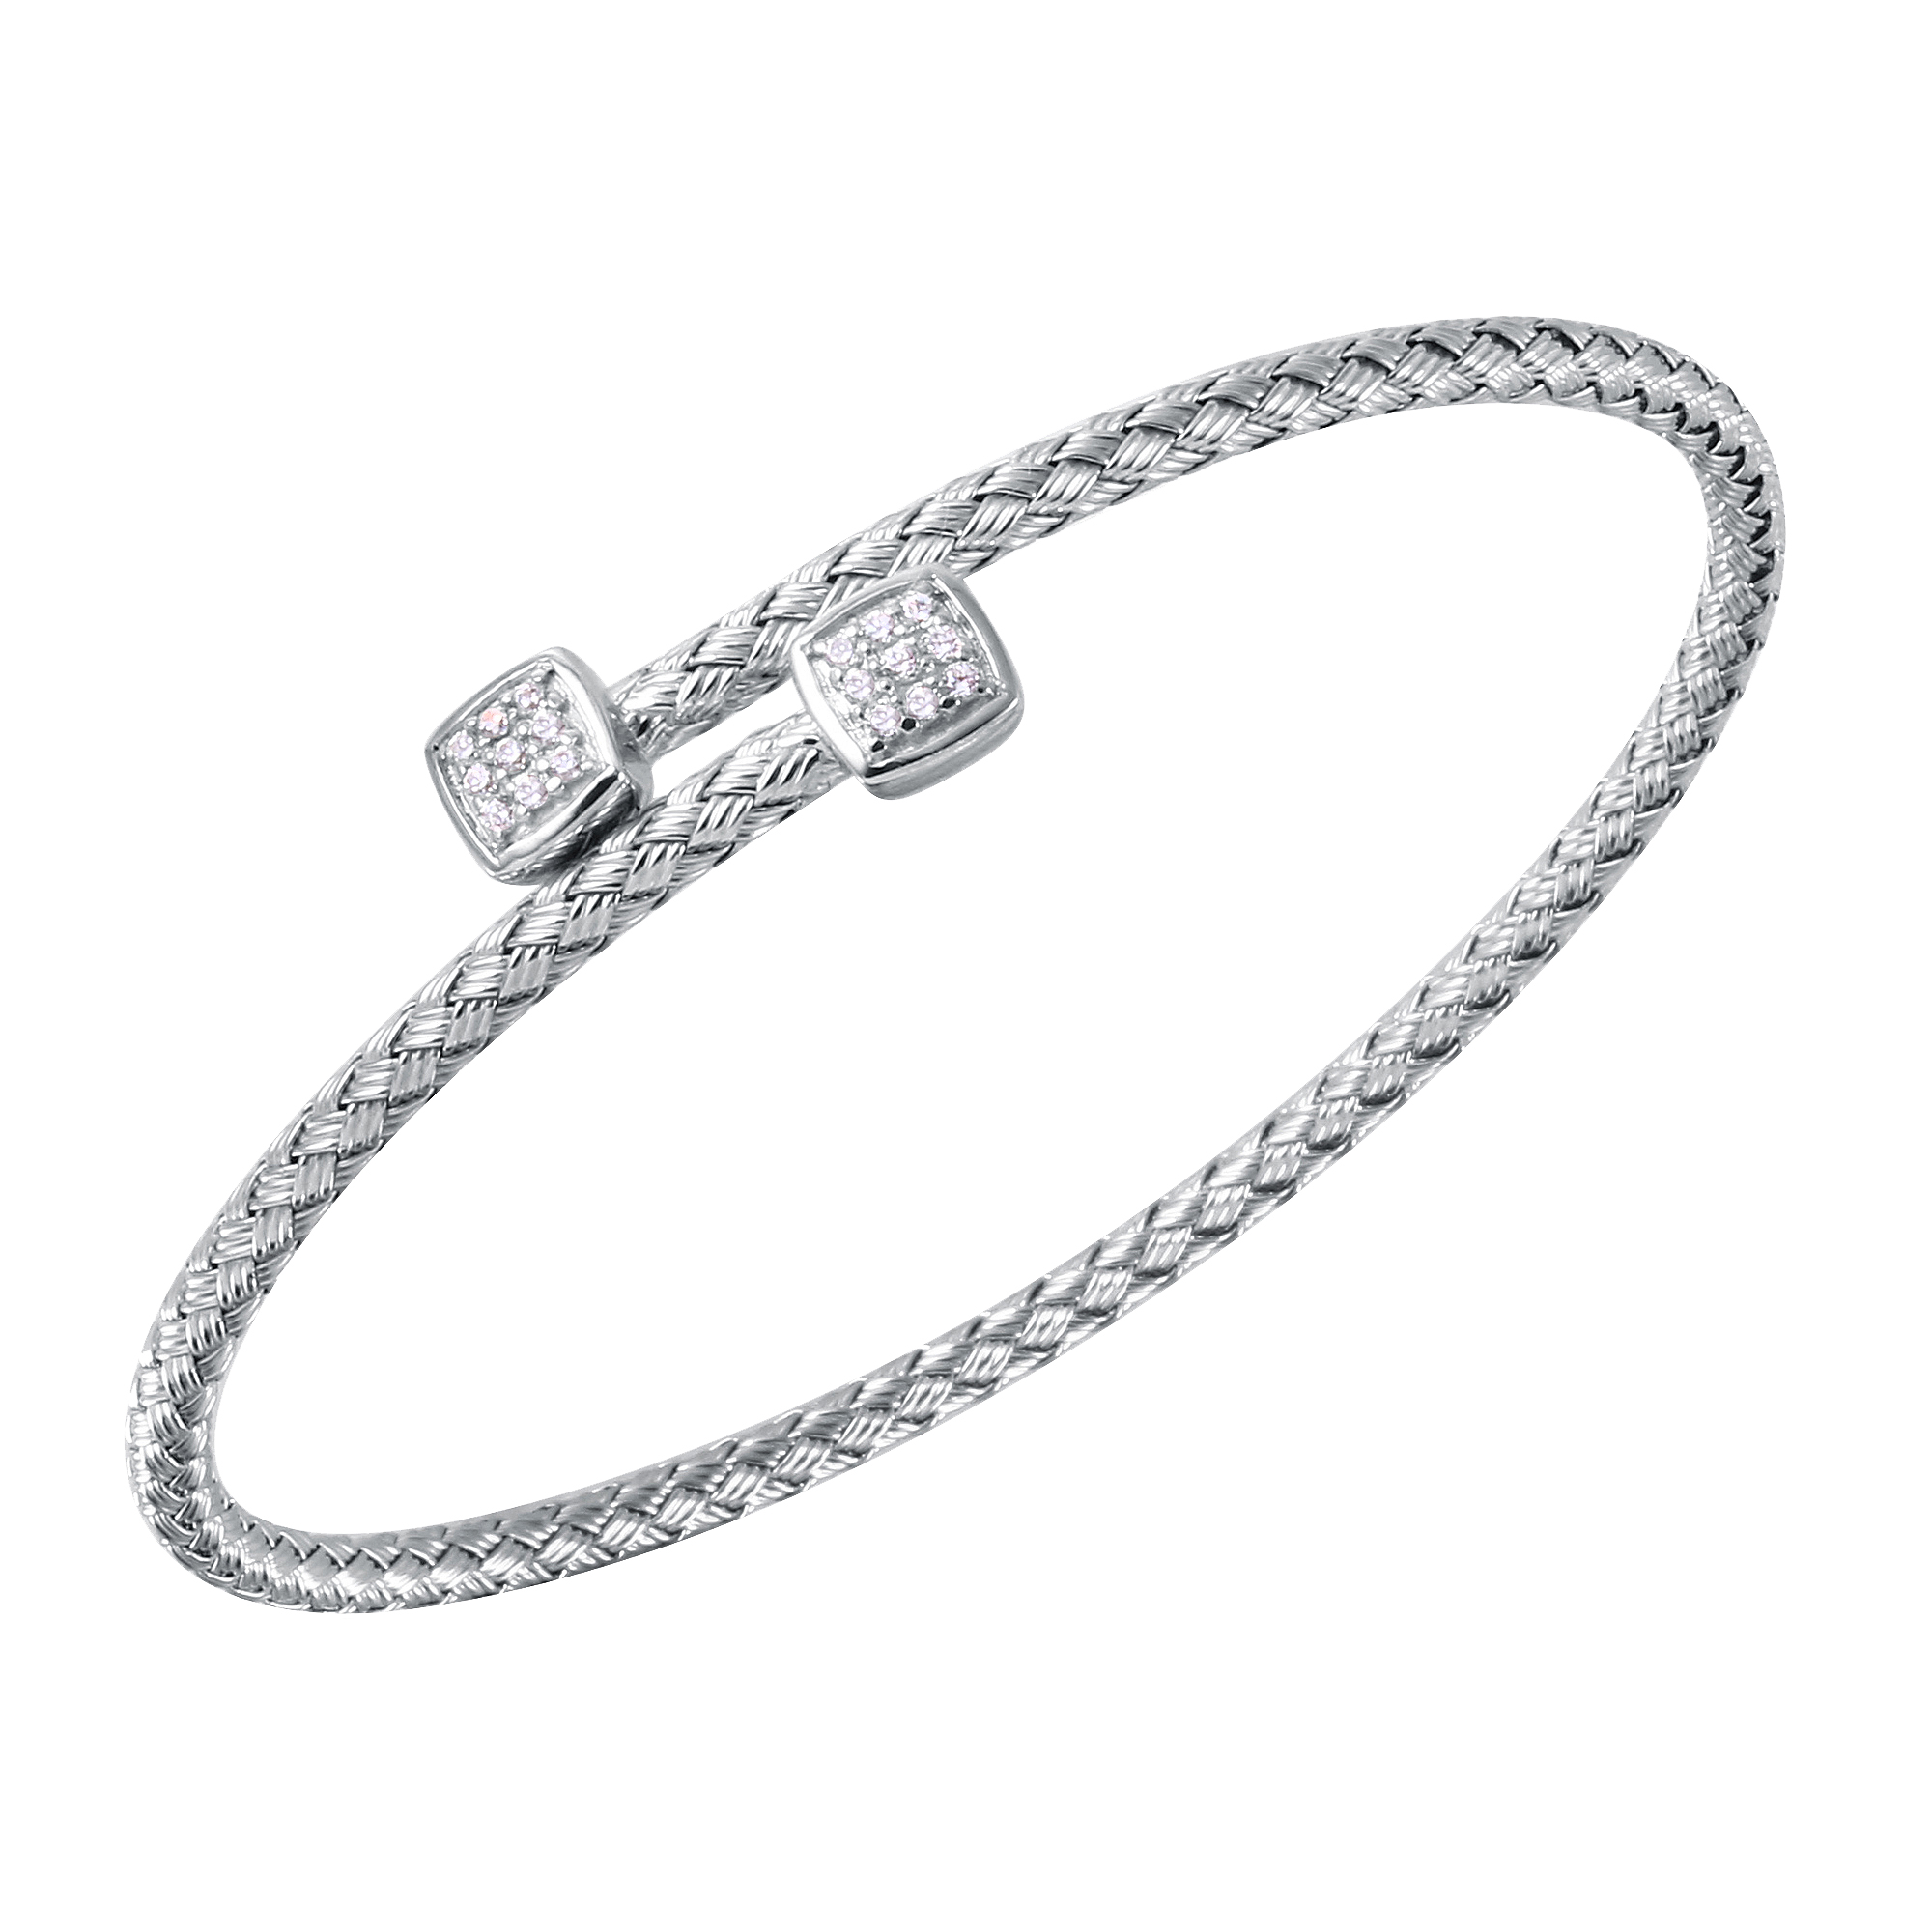 CHARLES GARNIER - Sterling Silver and CZ Cuff Bangle